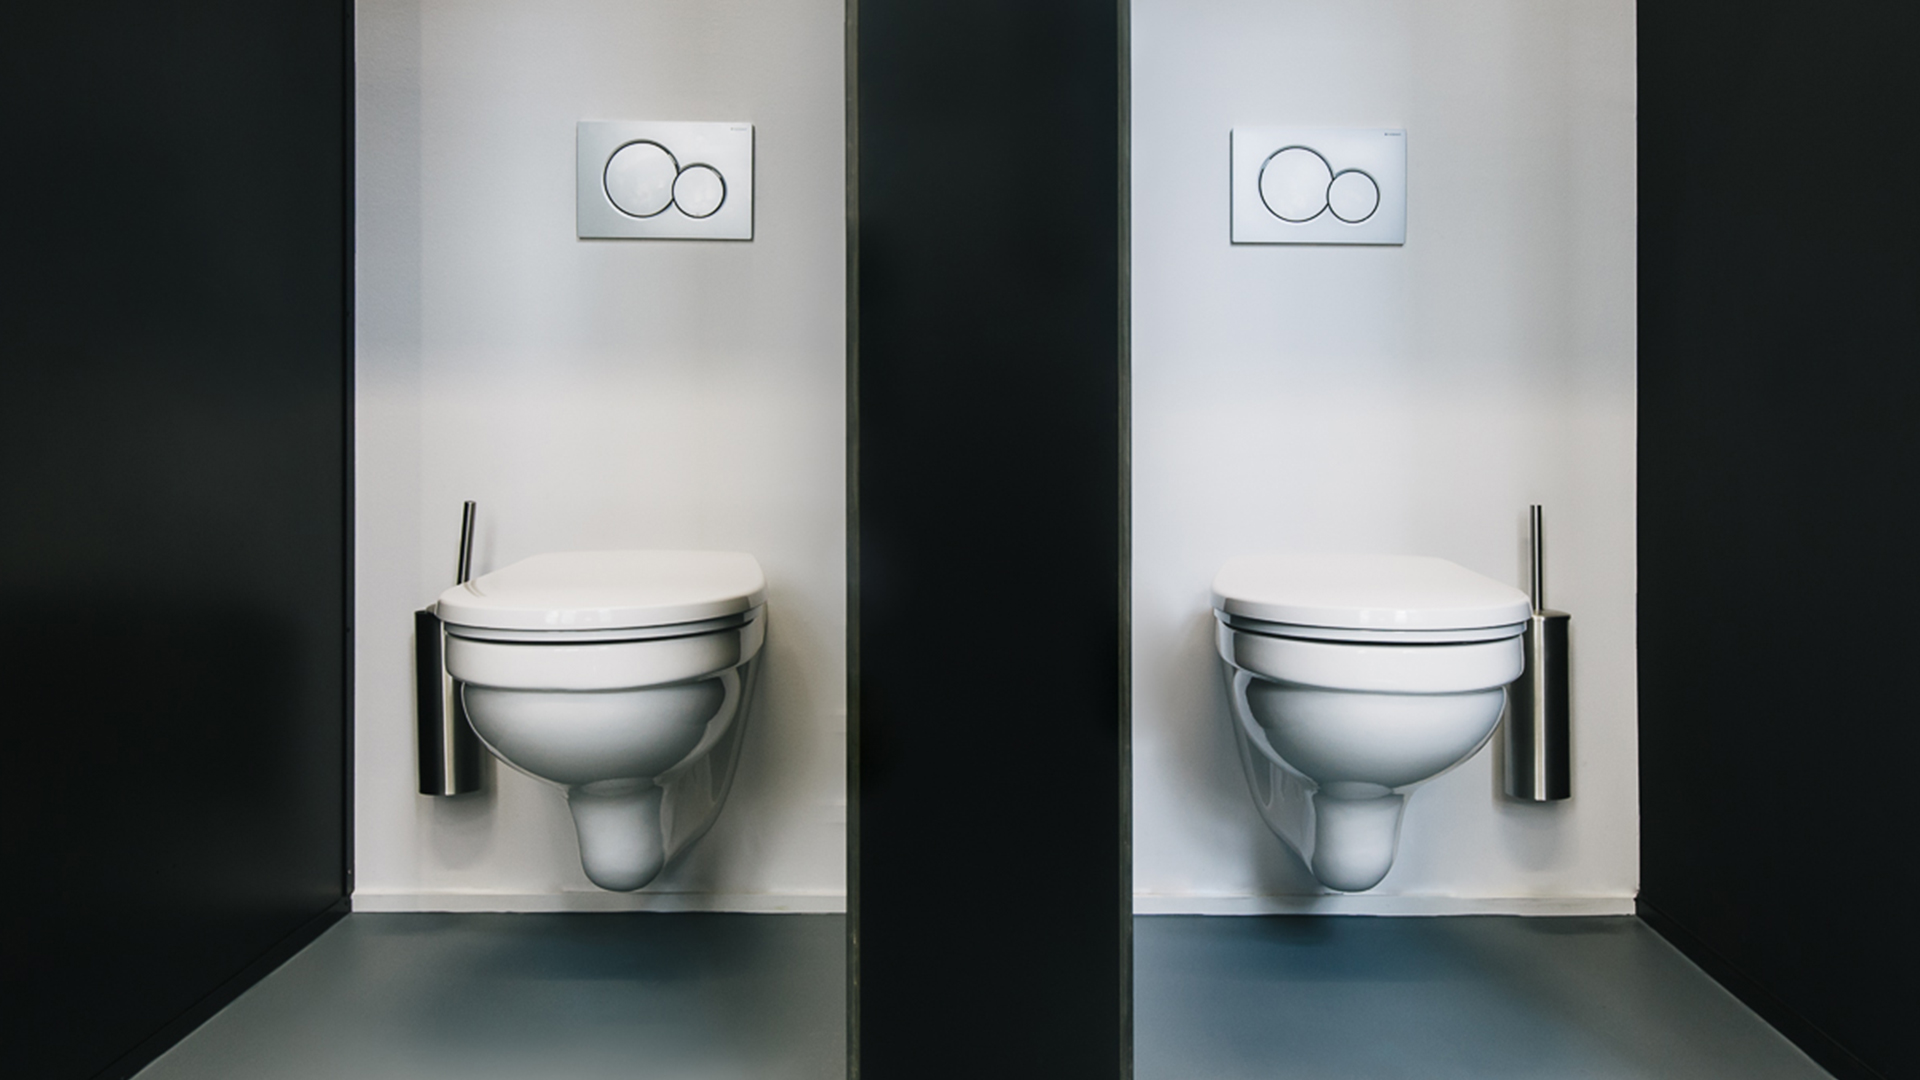 Two toilets separated by a partition